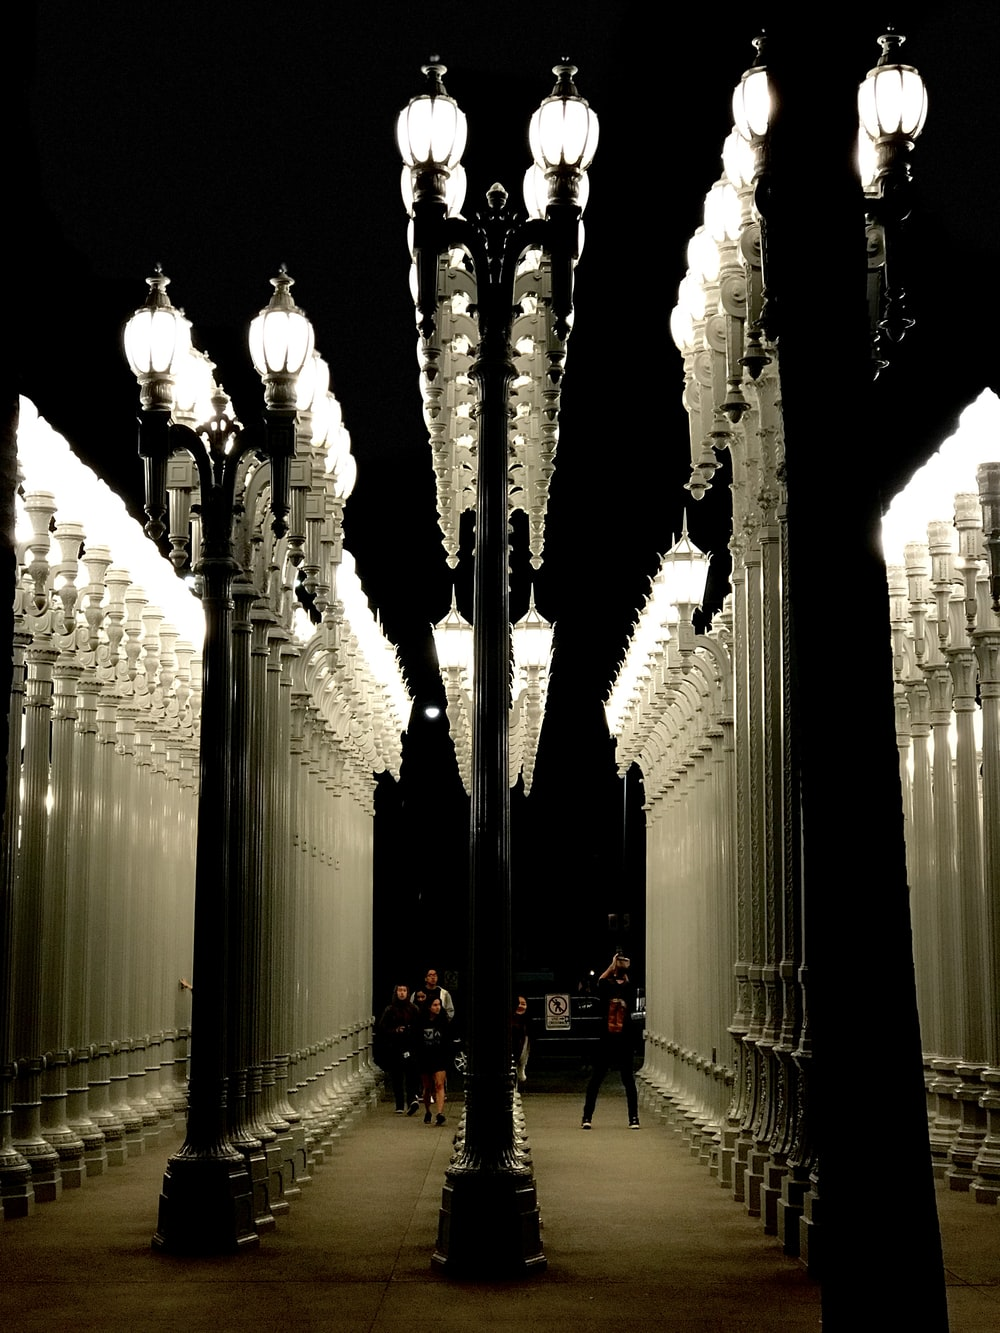 people walking near lighted posts